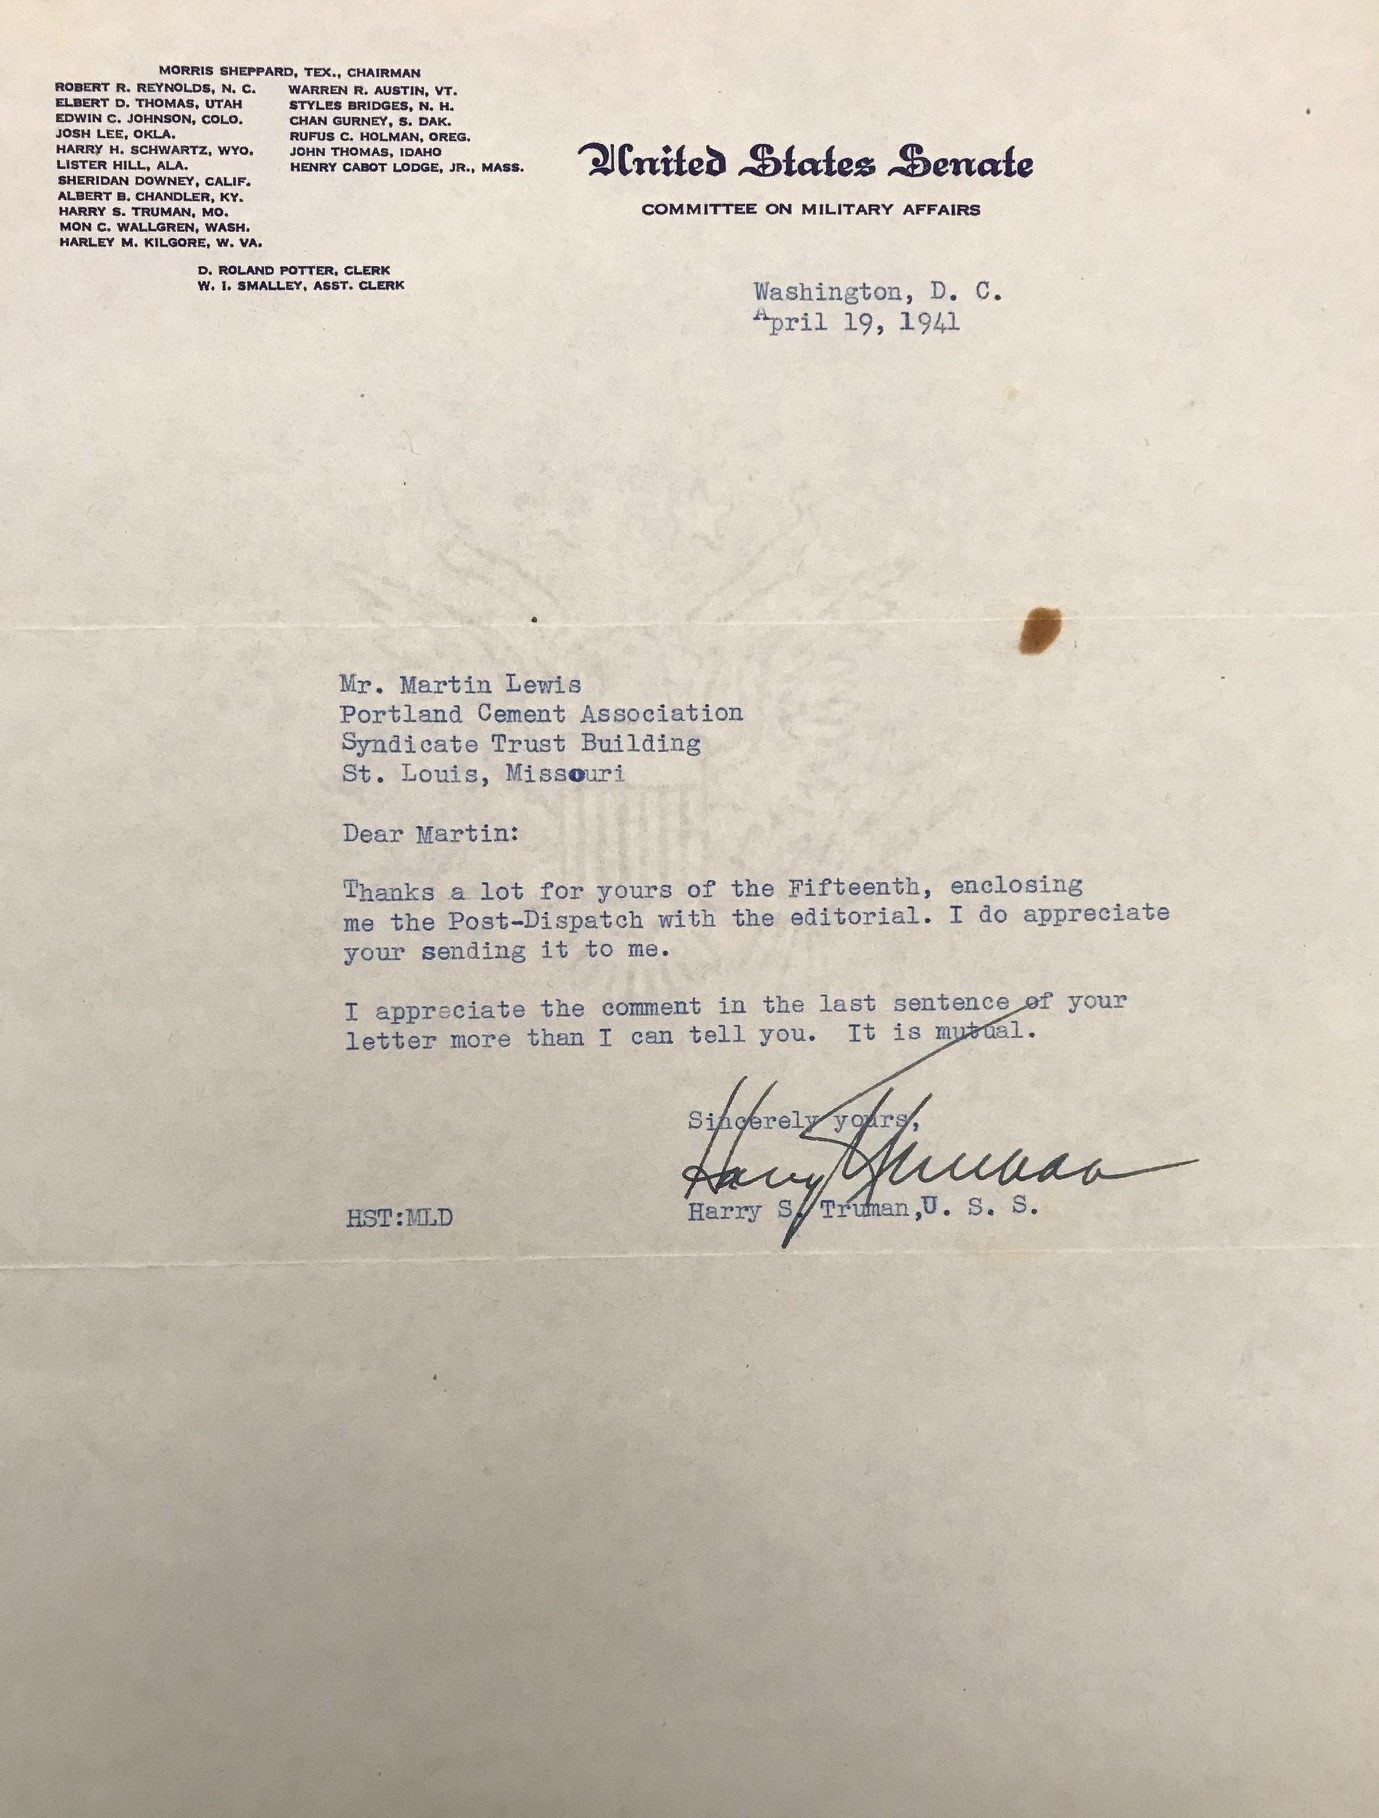 TLS Regarding St. Louis Press Coverage of the Upcoming Truman Committee Investigation of the National Defense Program